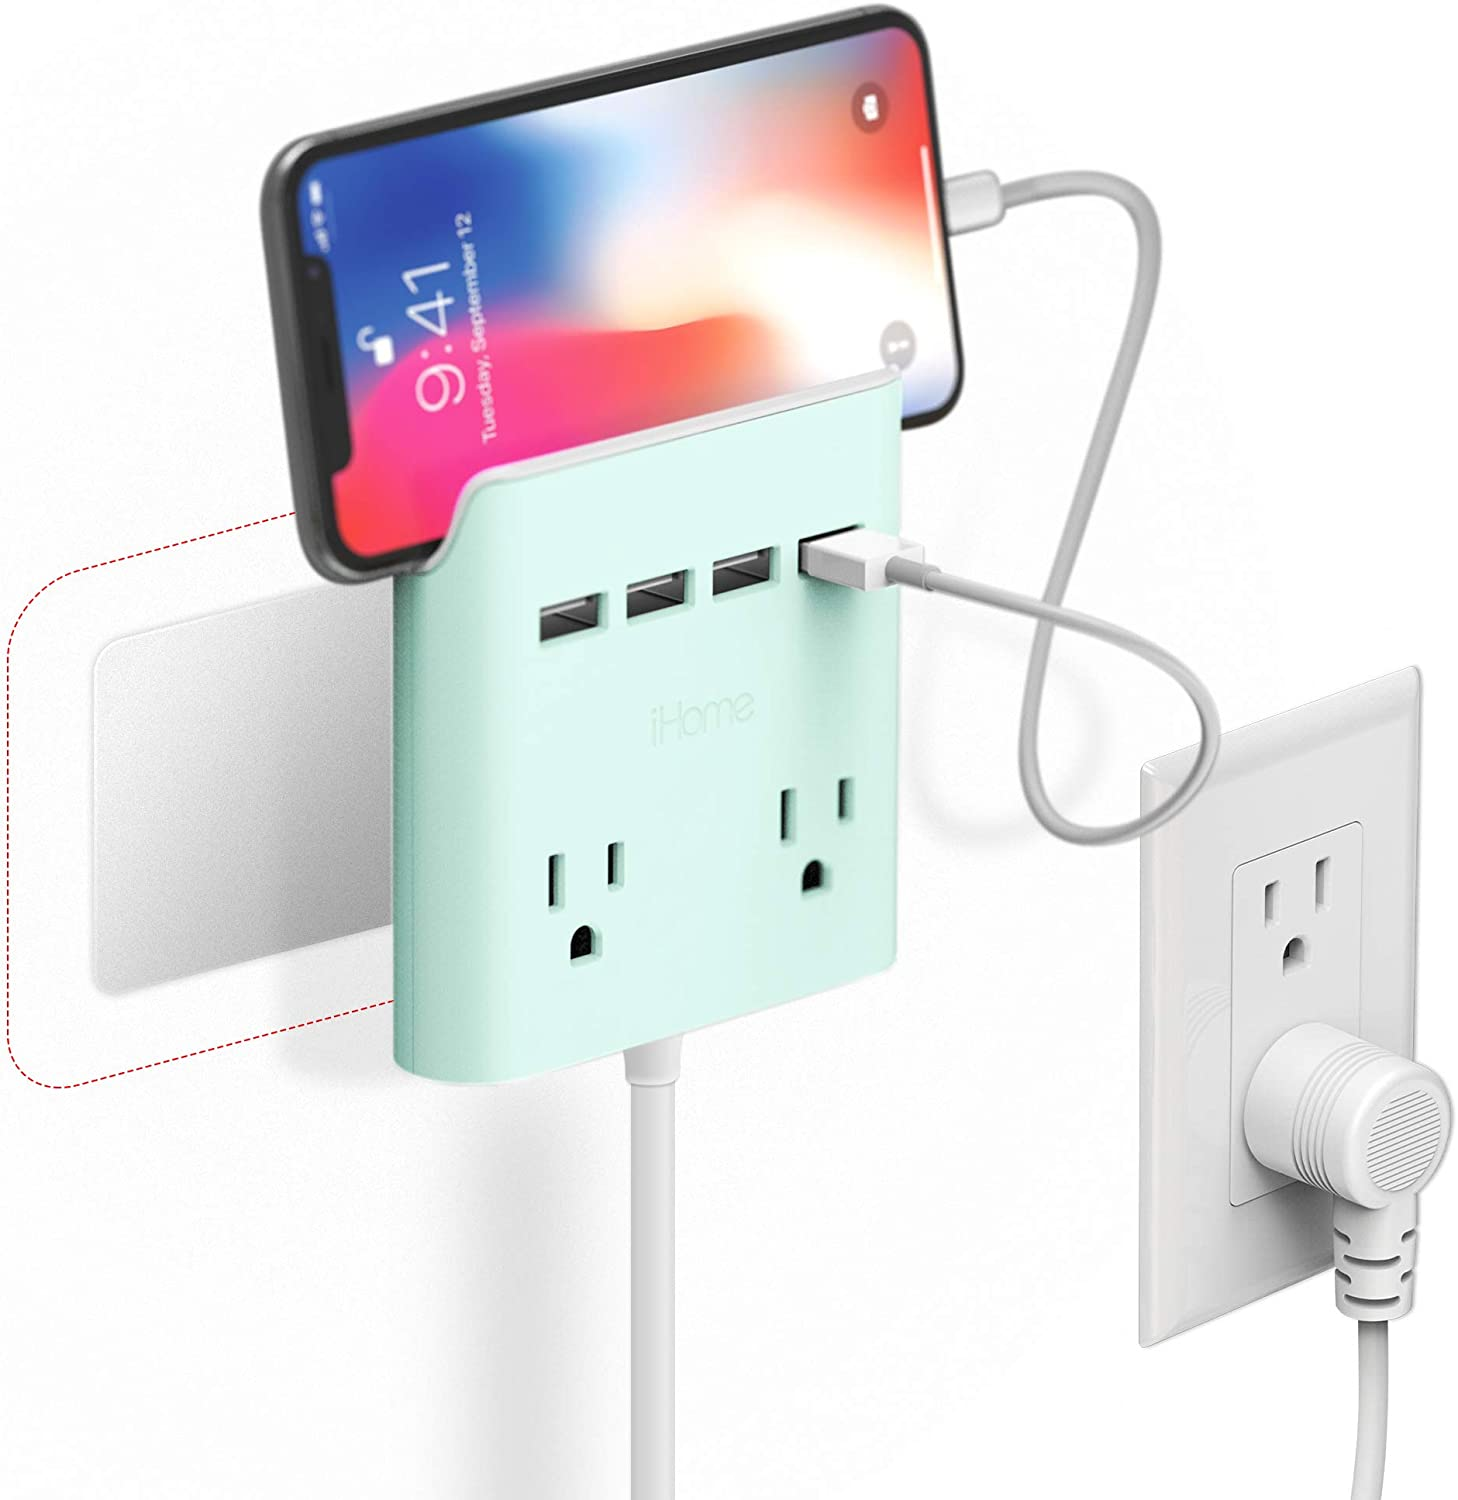 iHome Power Reach Multi-Plug Outlet Extender and Splitter, Fast Charging Portable Power Station with 2 Outlets and 4 USB Ports, 6 ft Extension Cord and Magnetic Wall Mount